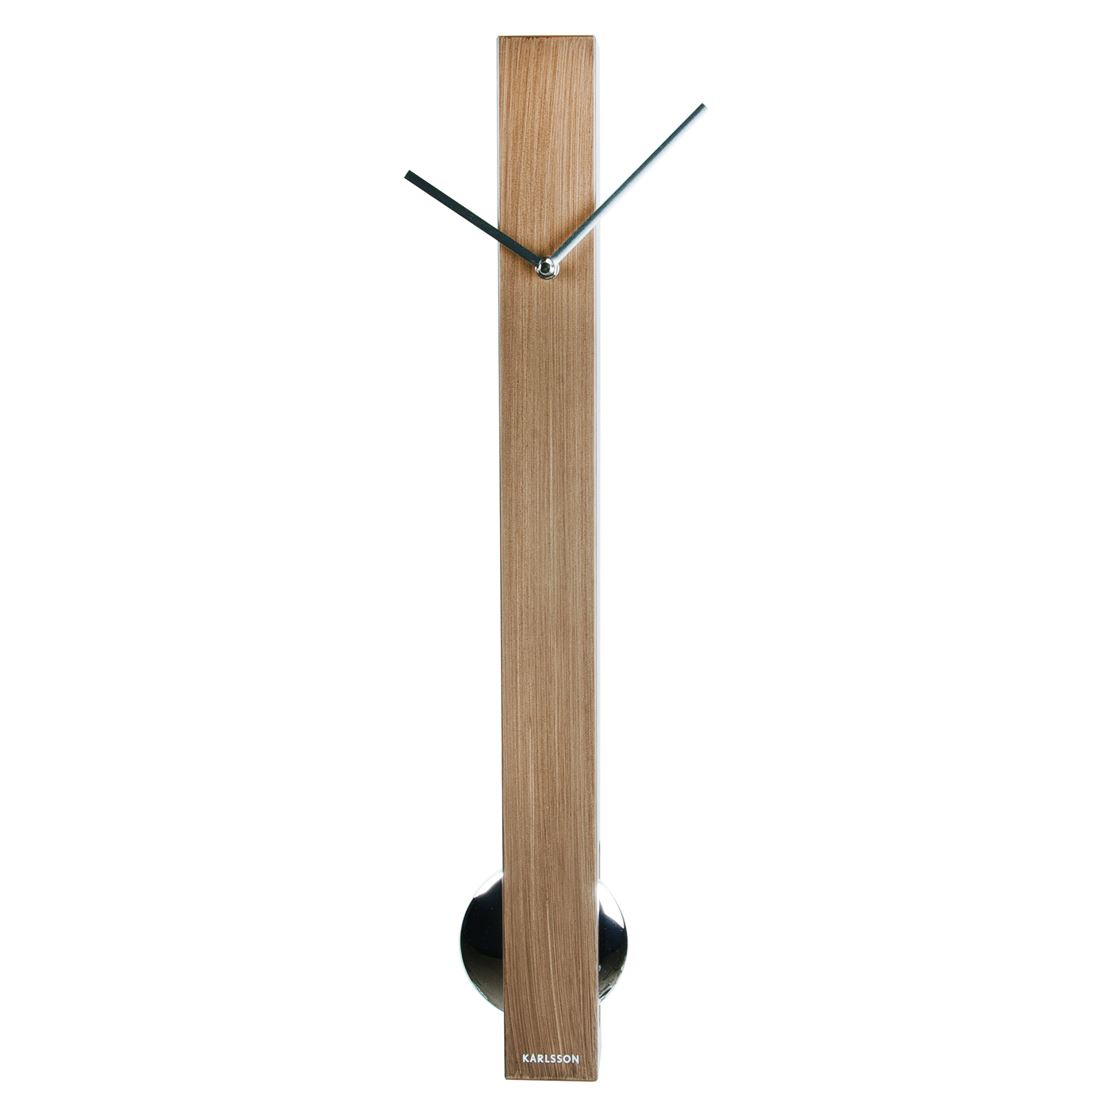 Karlsson tubular pendulum modern long designer home metal wall clock - Stylish pendulum wall clock ...